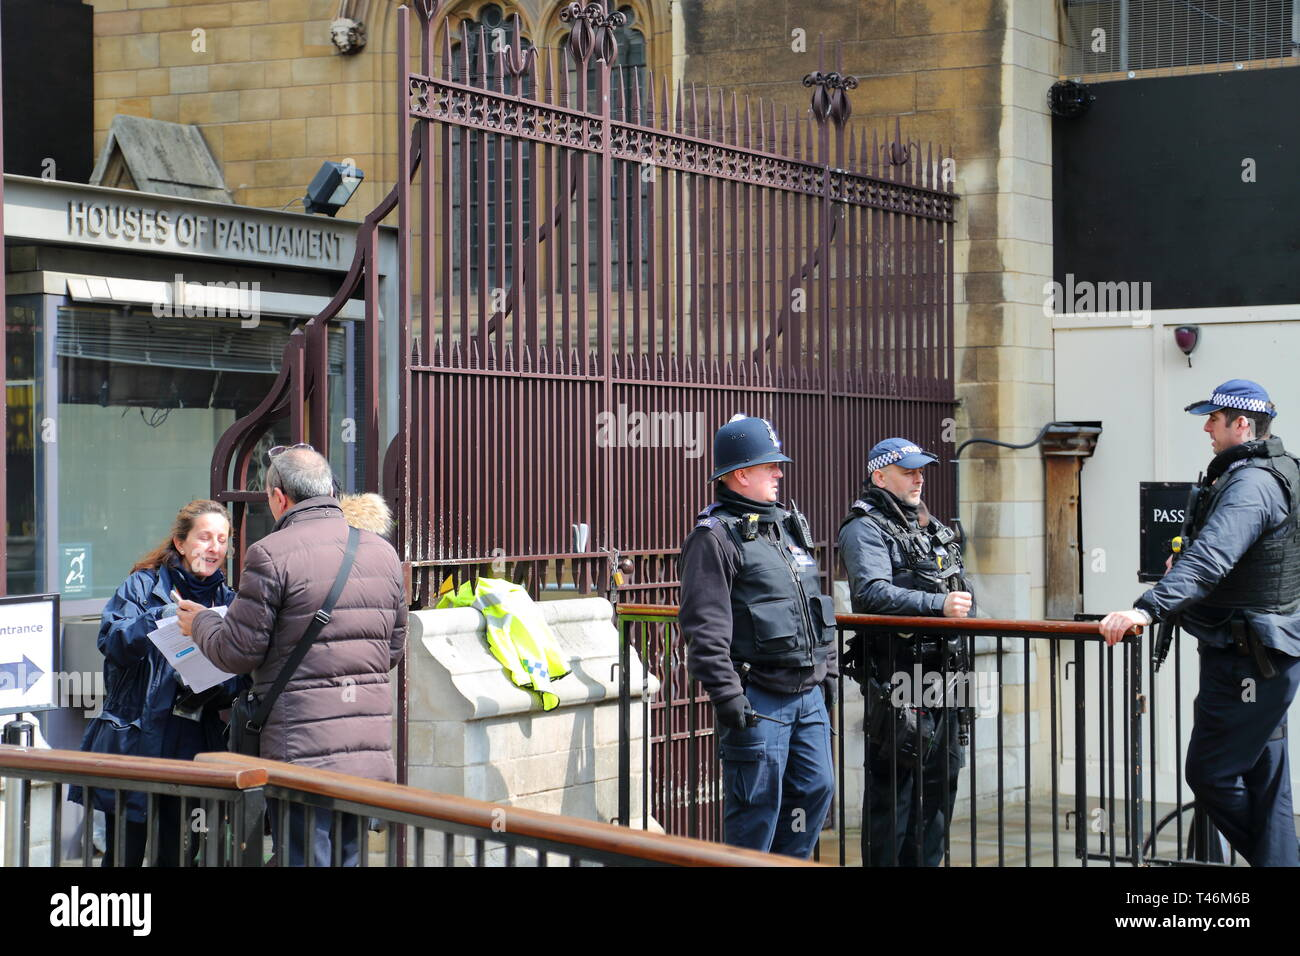 Hightened security at the House of Parliament, Westminster, London, UK - Stock Image